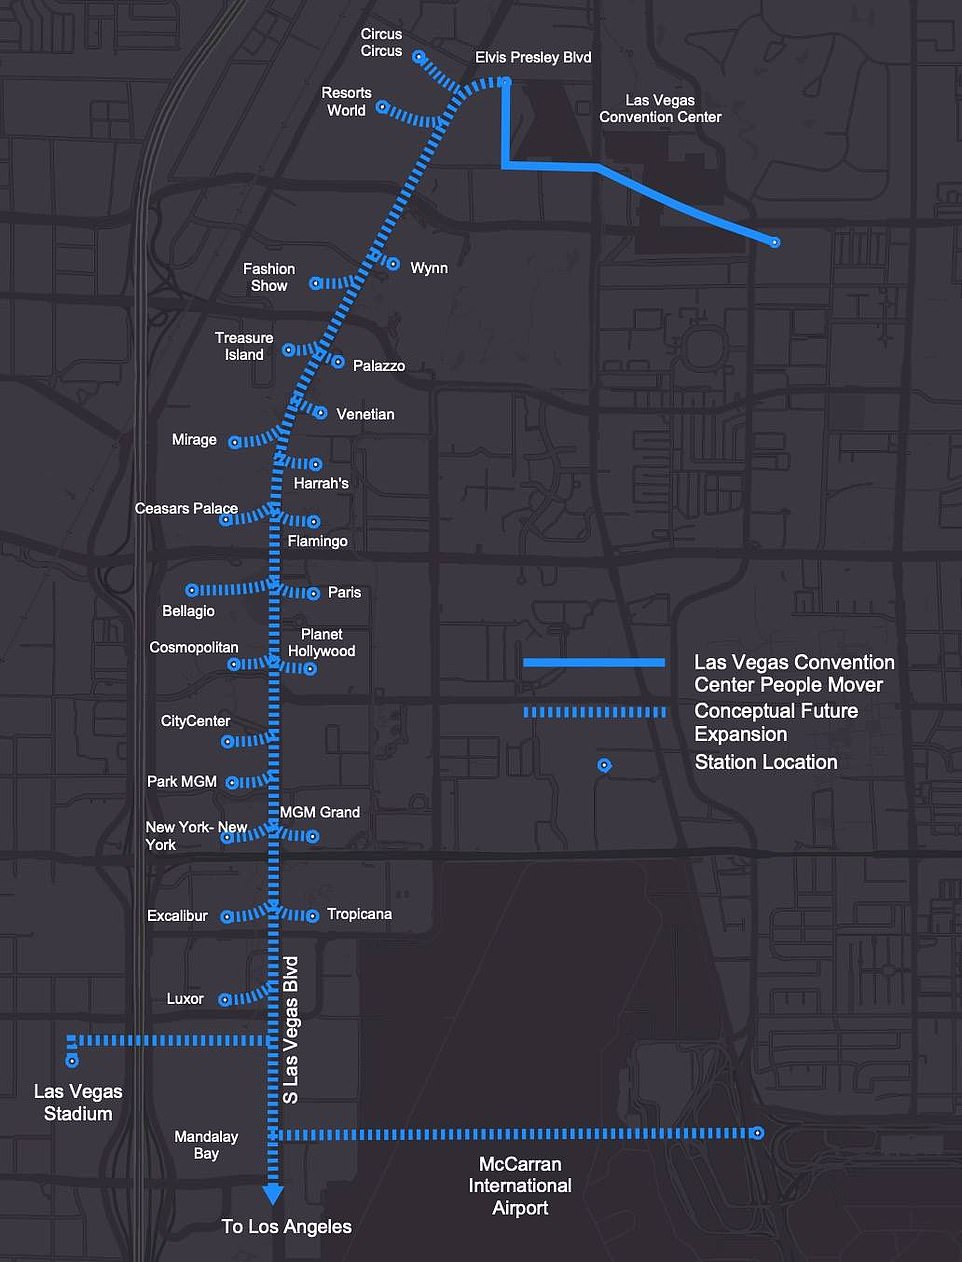 The 0.8 mile tunnel runs from the Convention Center to the city's famous Strip - but could be expanded in the future